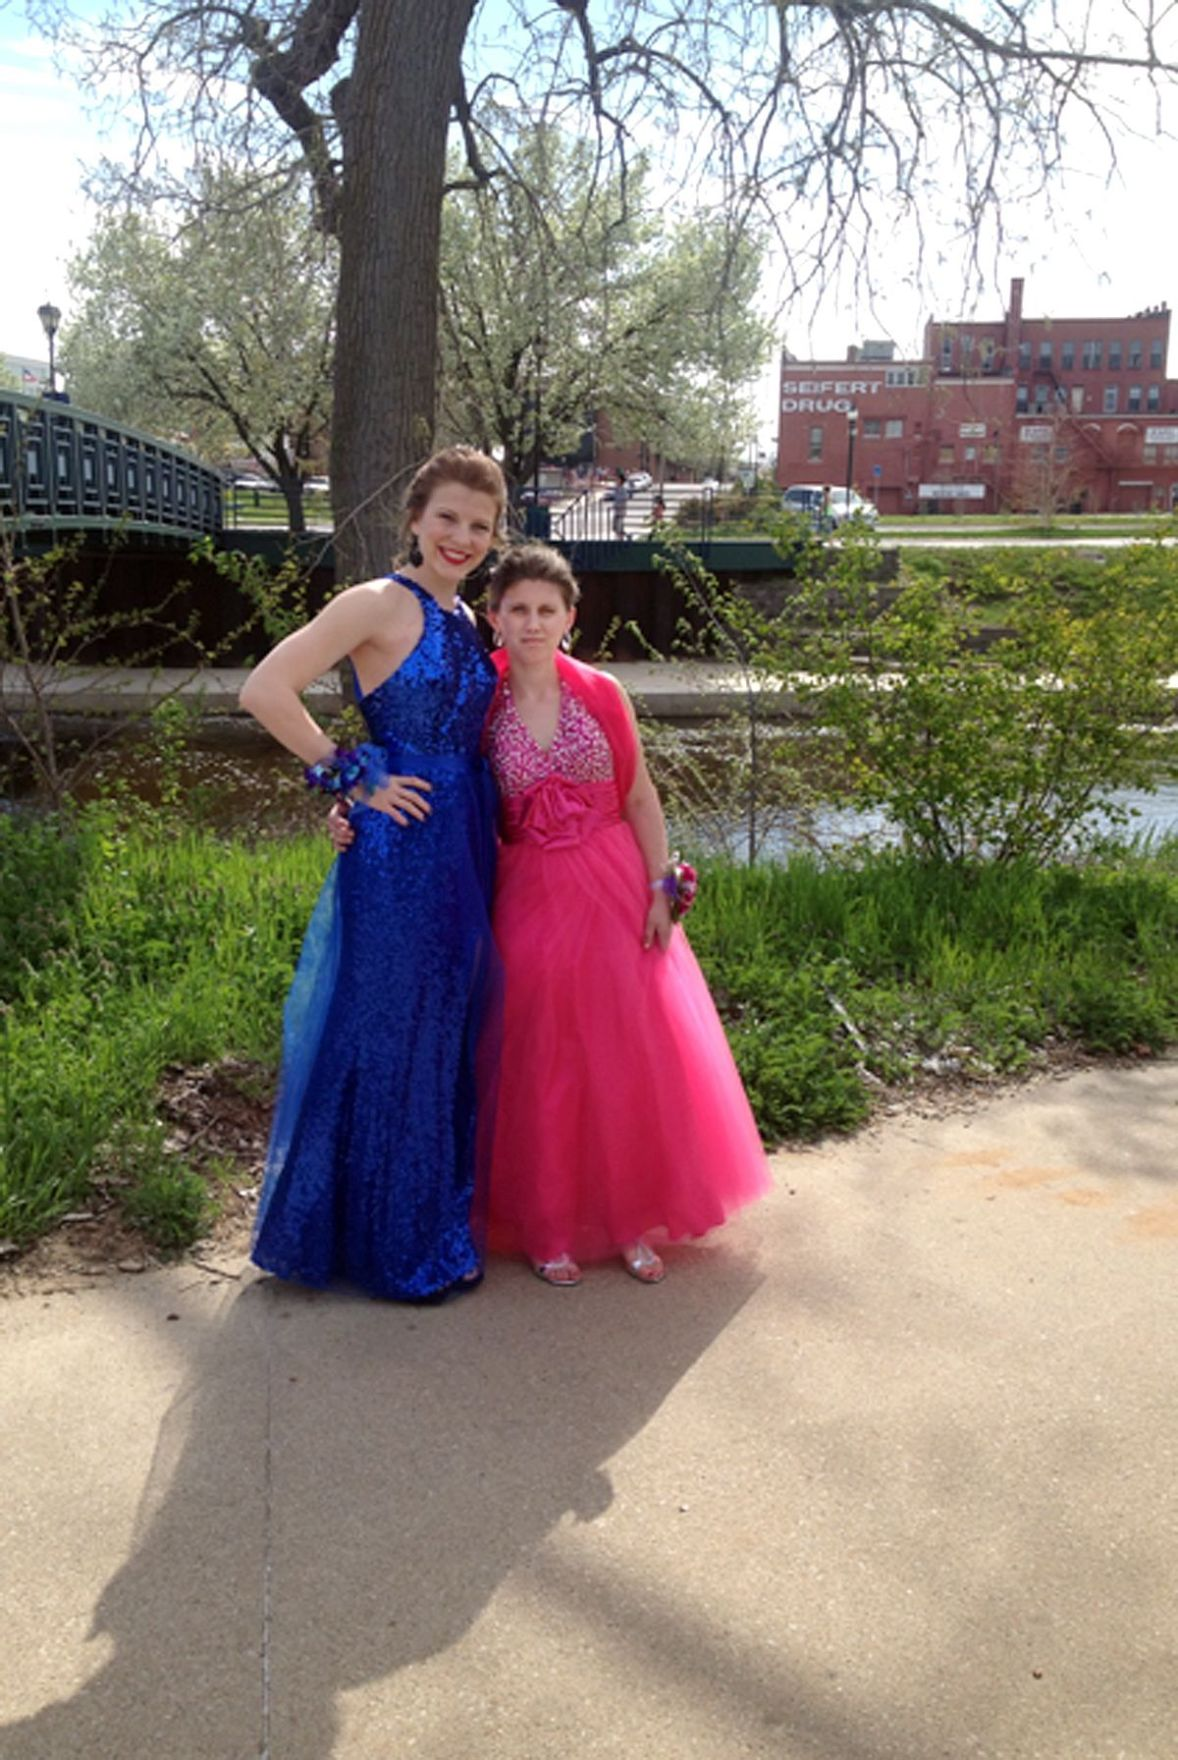 Seniors give classmate with special needs a prom to remember